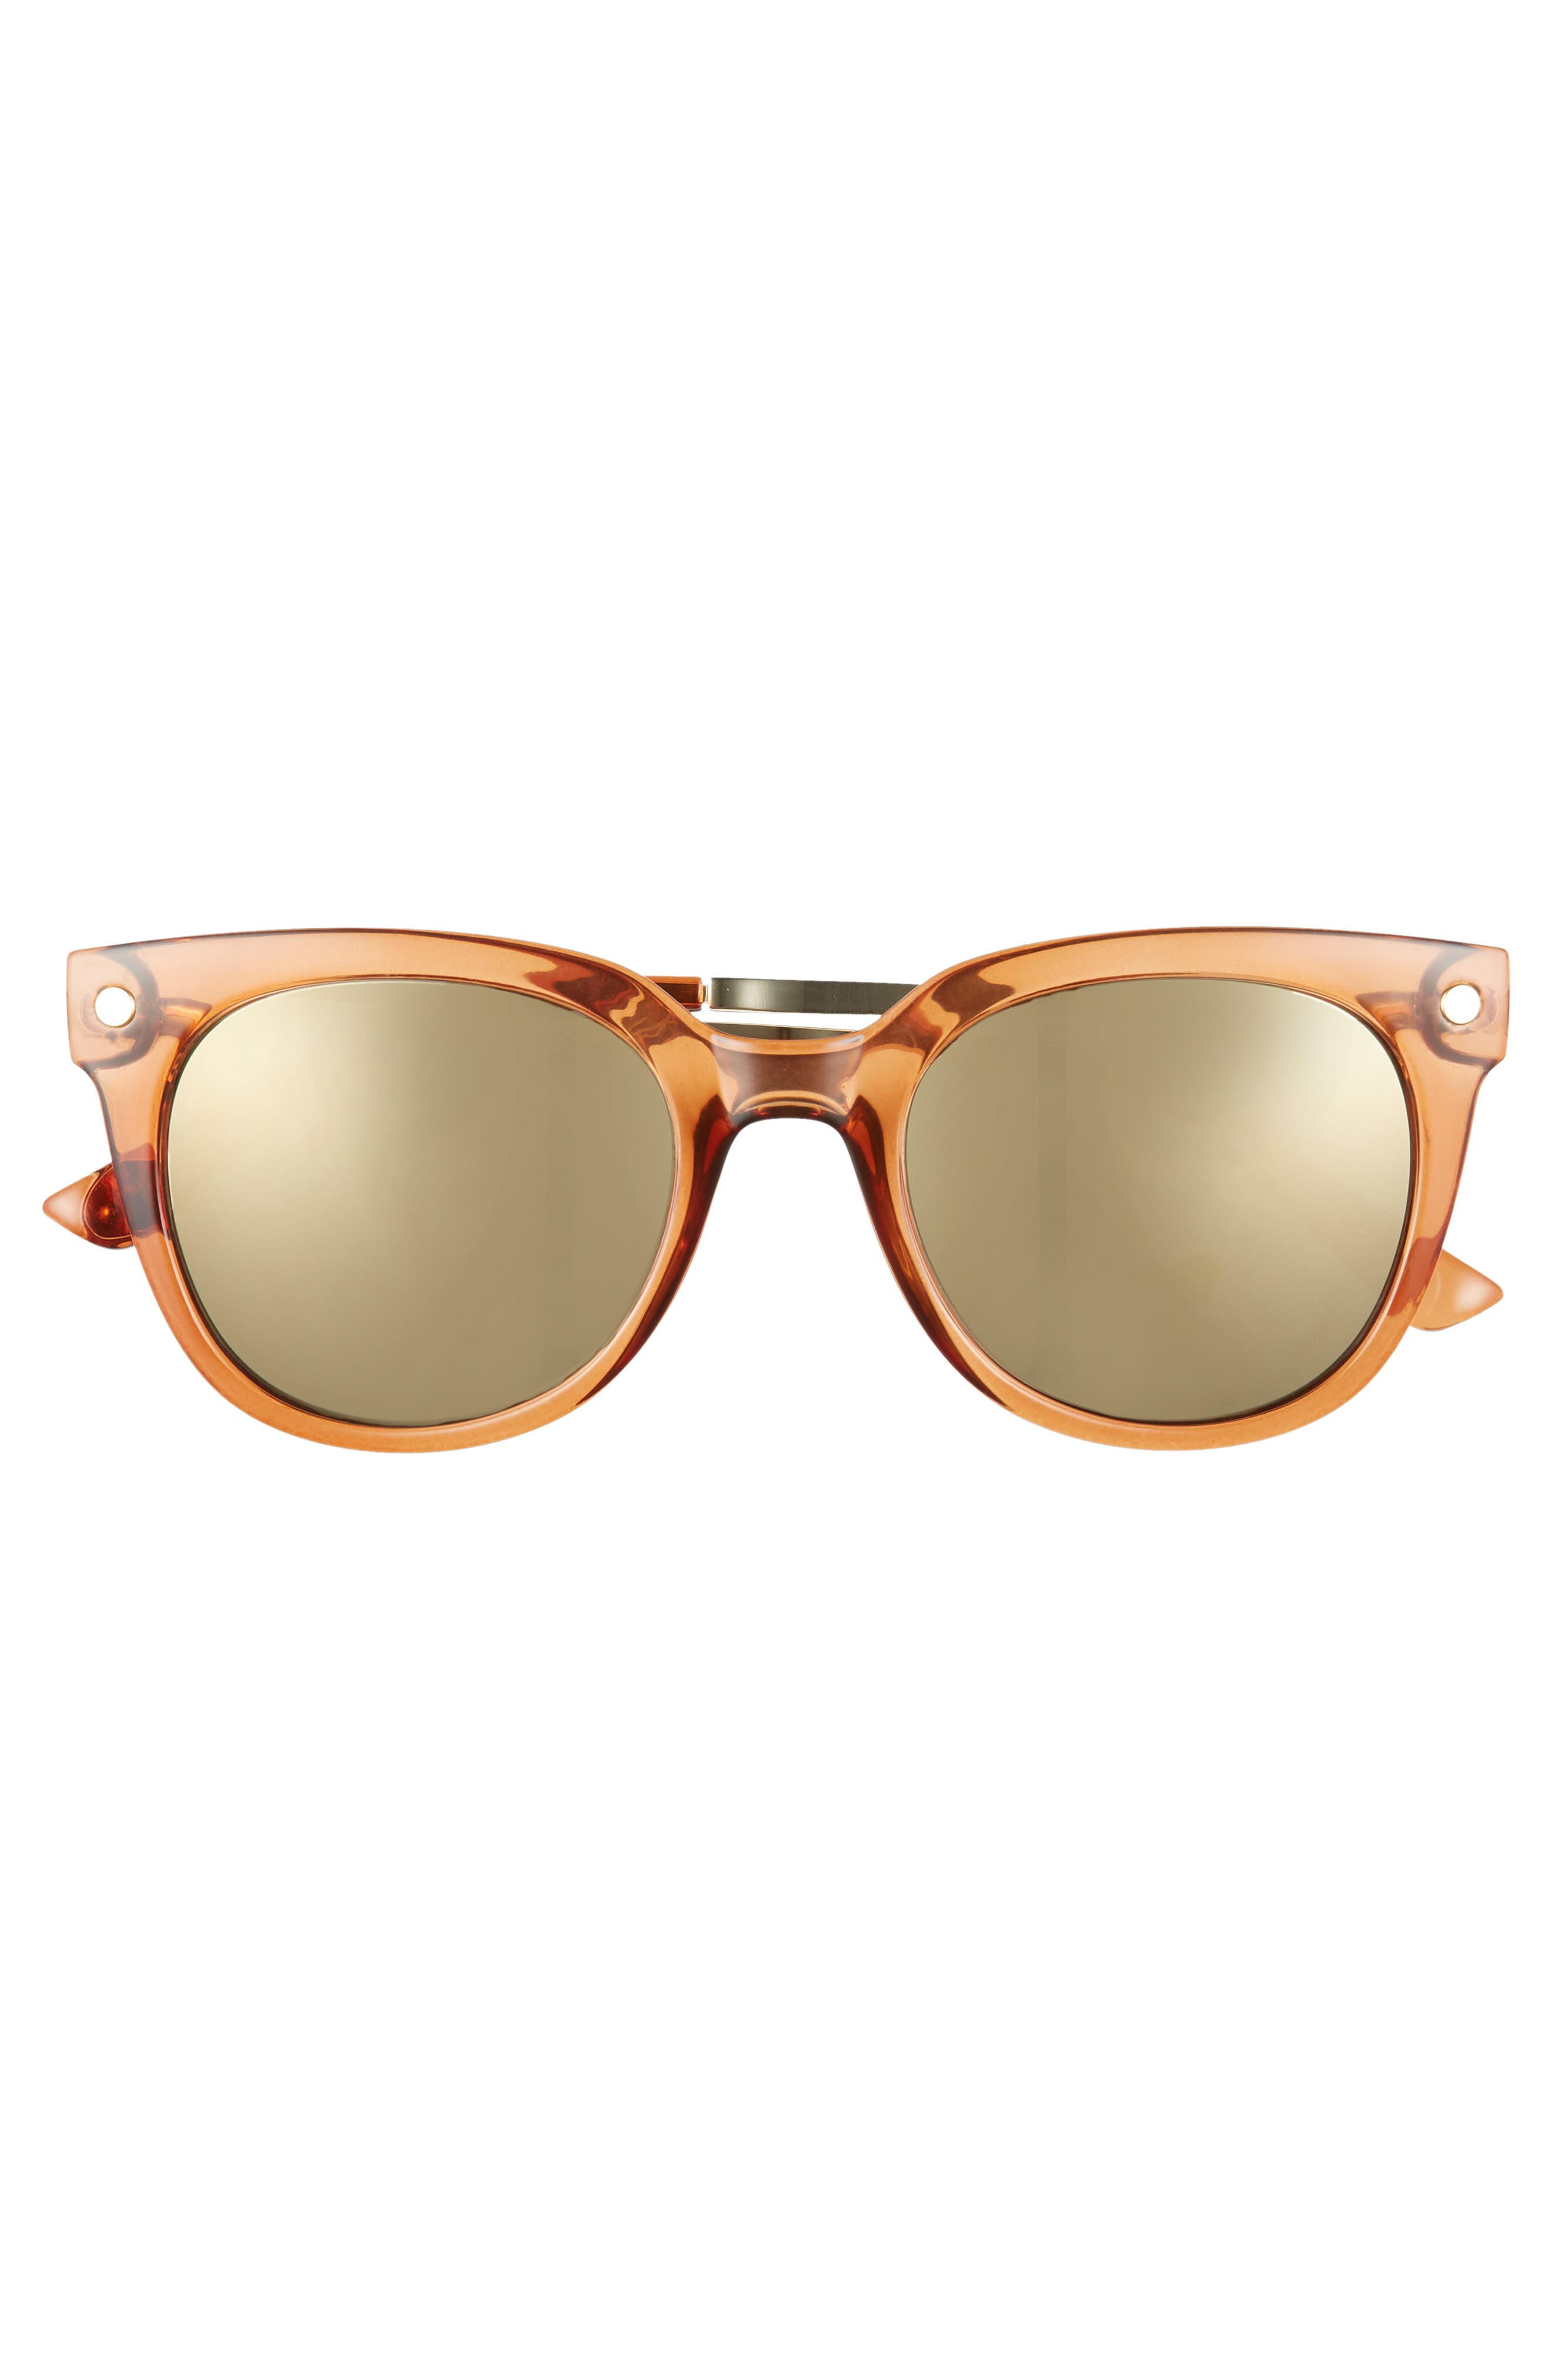 Malabar 52mm Sunglasses,                             Alternate thumbnail 3, color,                             Maple